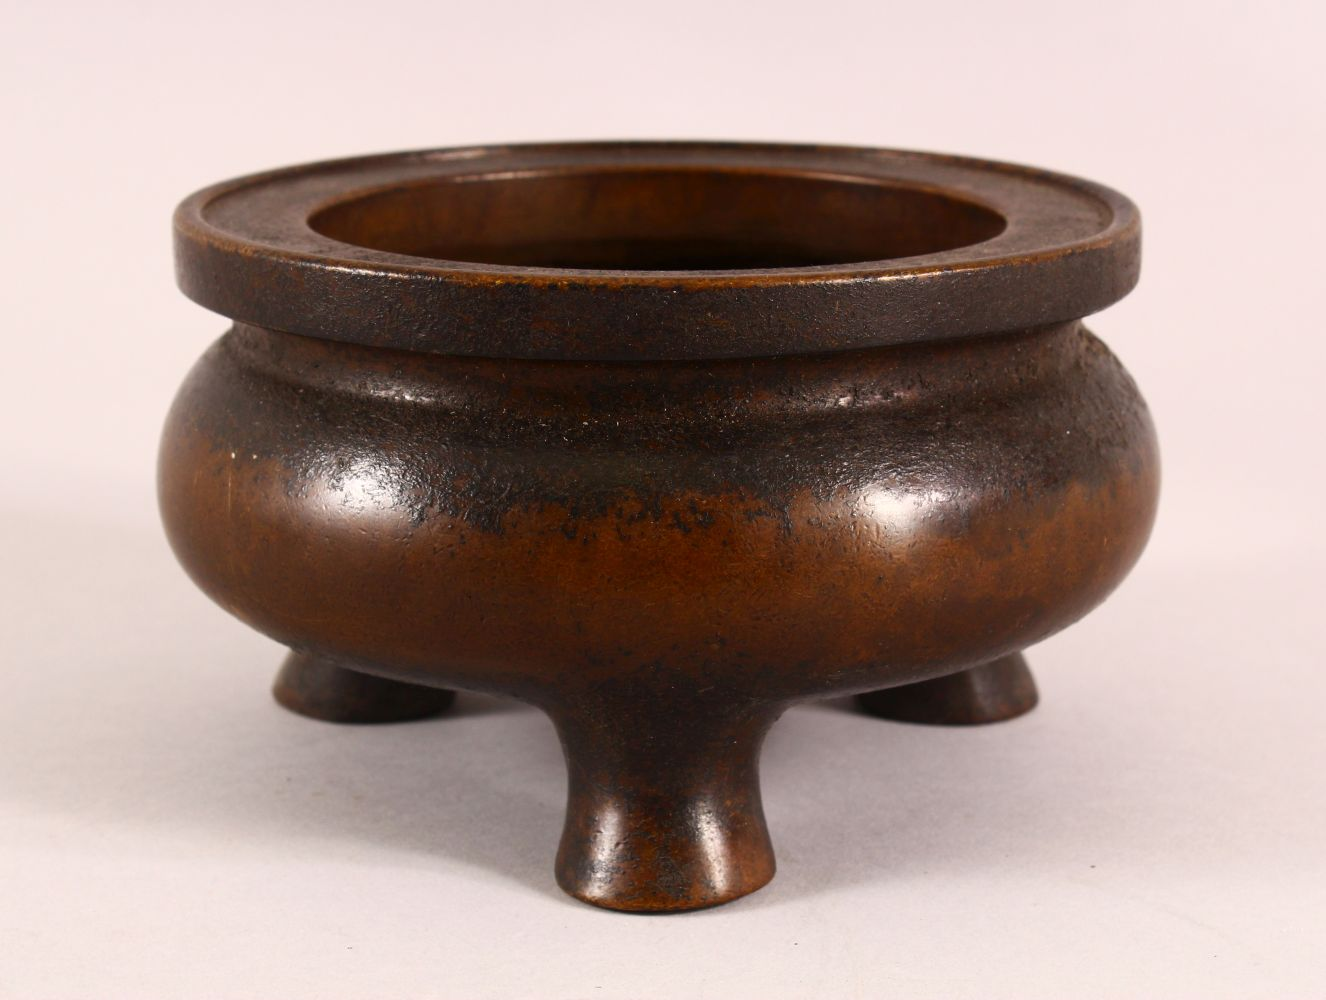 A CHINESE XUANDE STYLE BRONZE TRIPOD CENSER, underside with a mark, 16cm